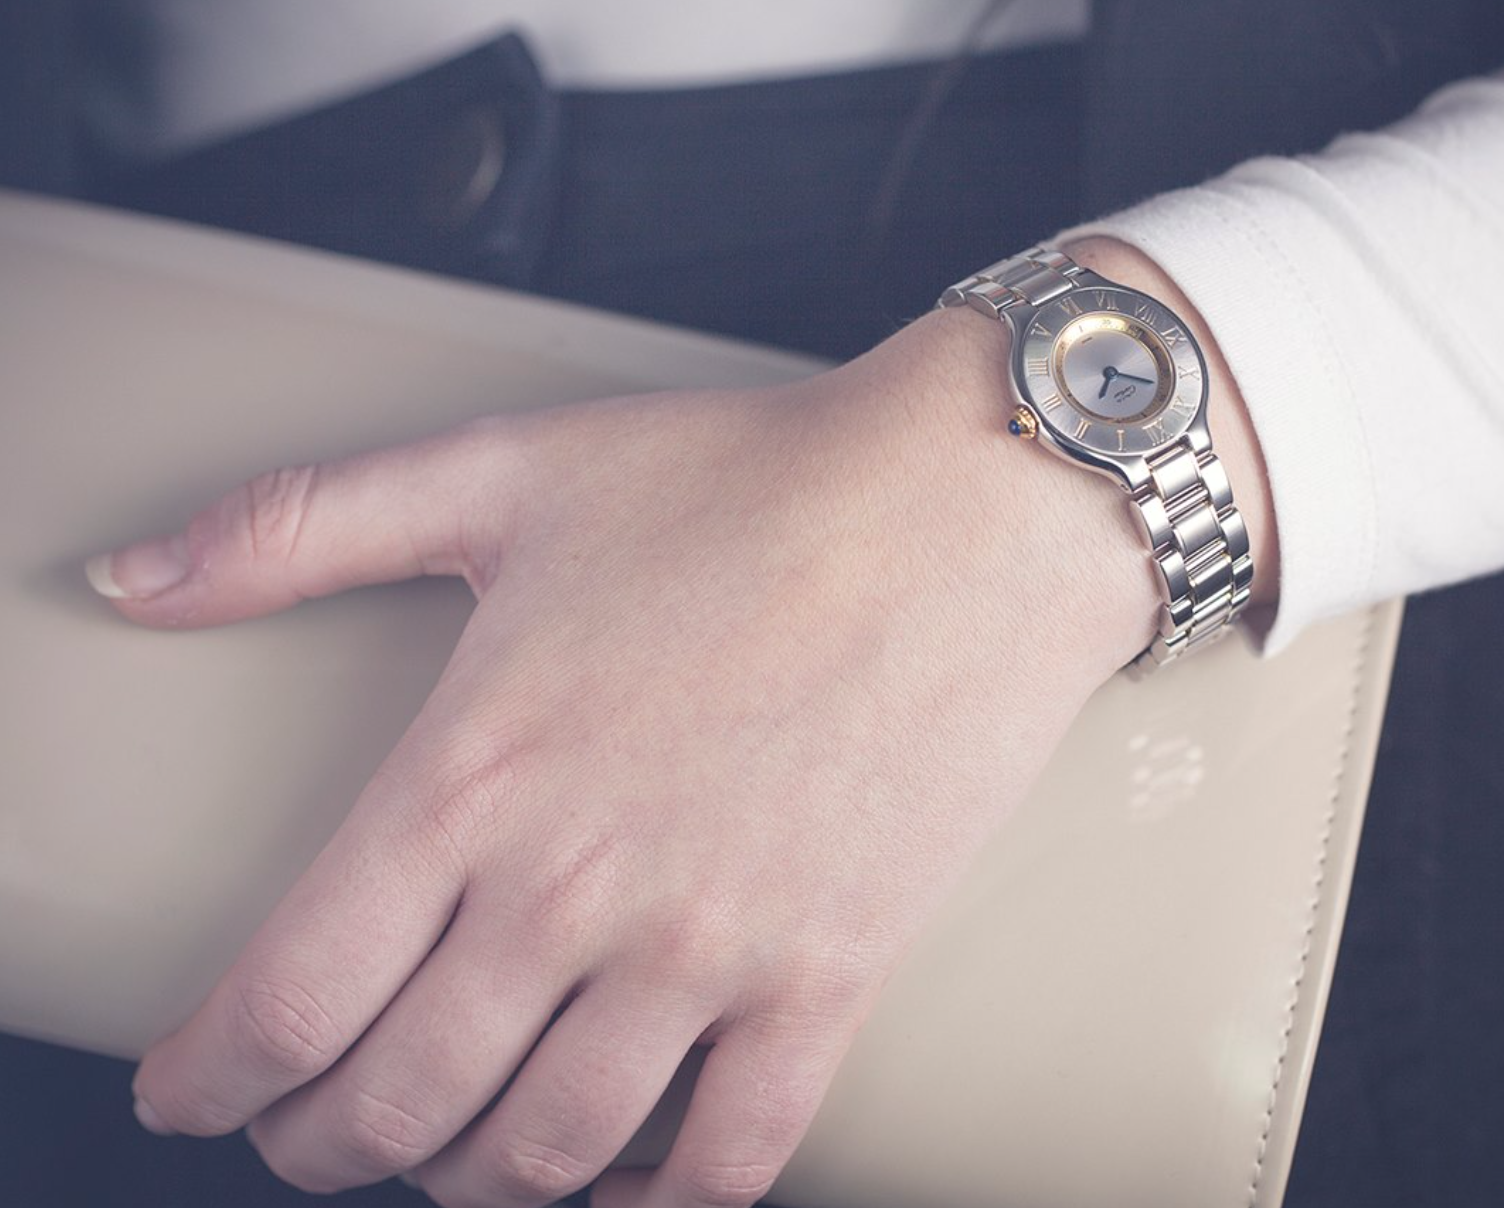 I'm not ashamed to admit I like the finer things in life, I thing everyone deserves a treat and there are ways to get them with out breaking the bank. Be it  luxury handbags or a designer watch. Here's why and how  I justify it.